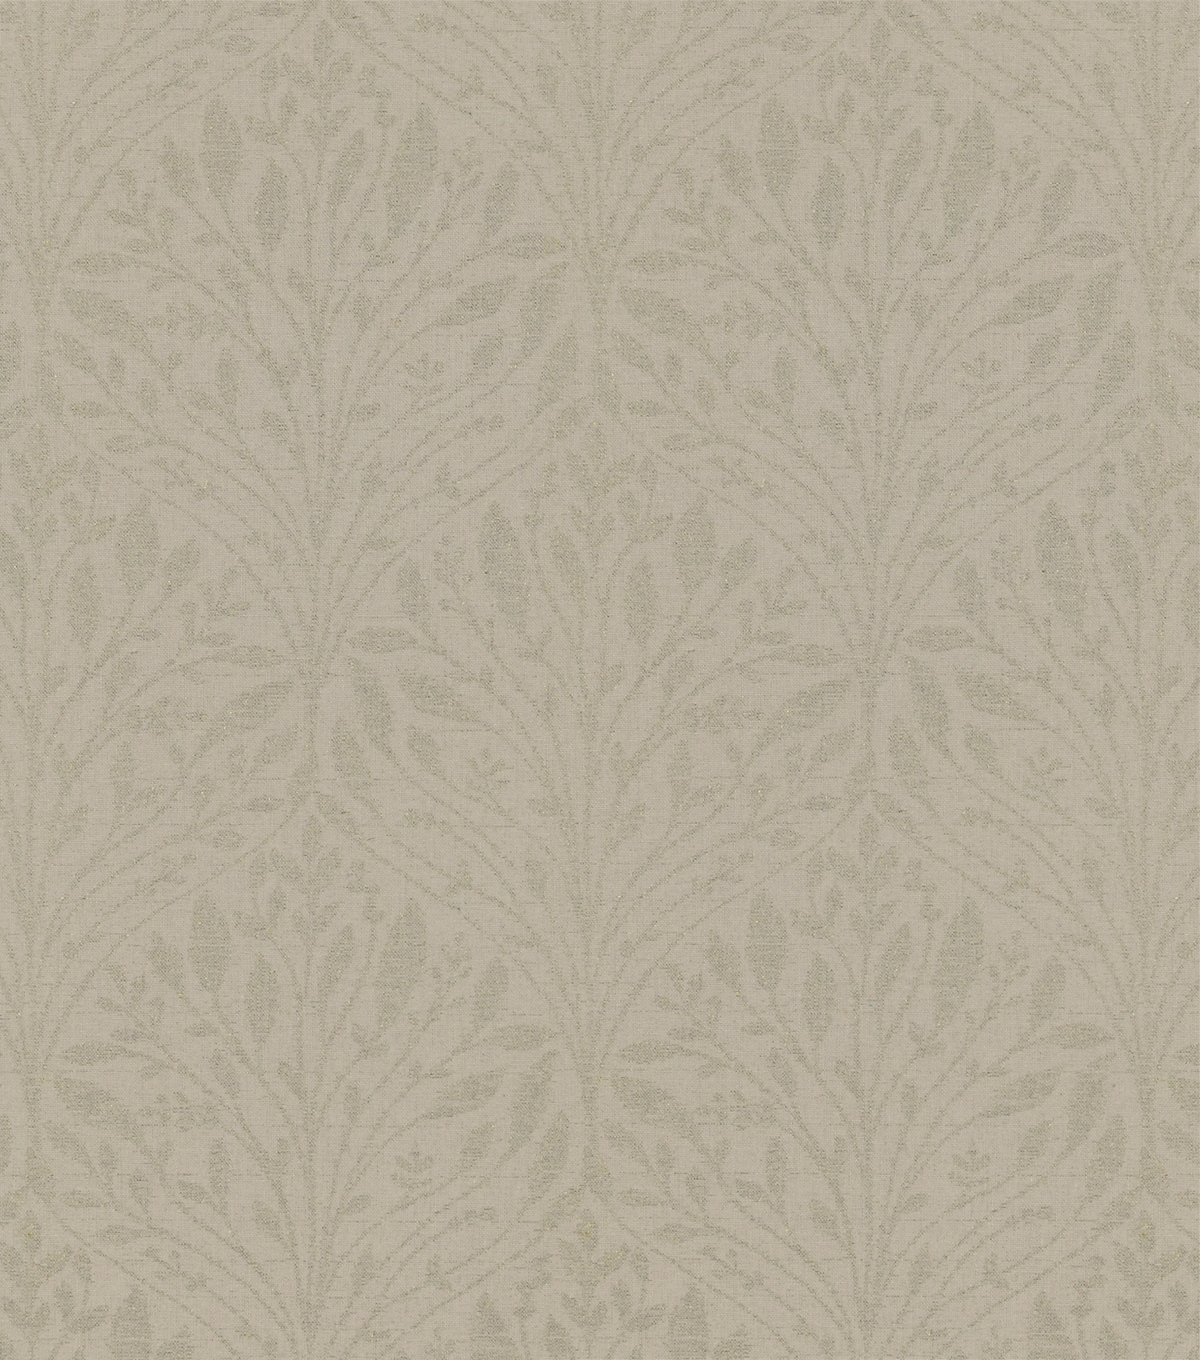 Covington Multi-Purpose Decor Fabric 55\u0022-Shimmer Softly